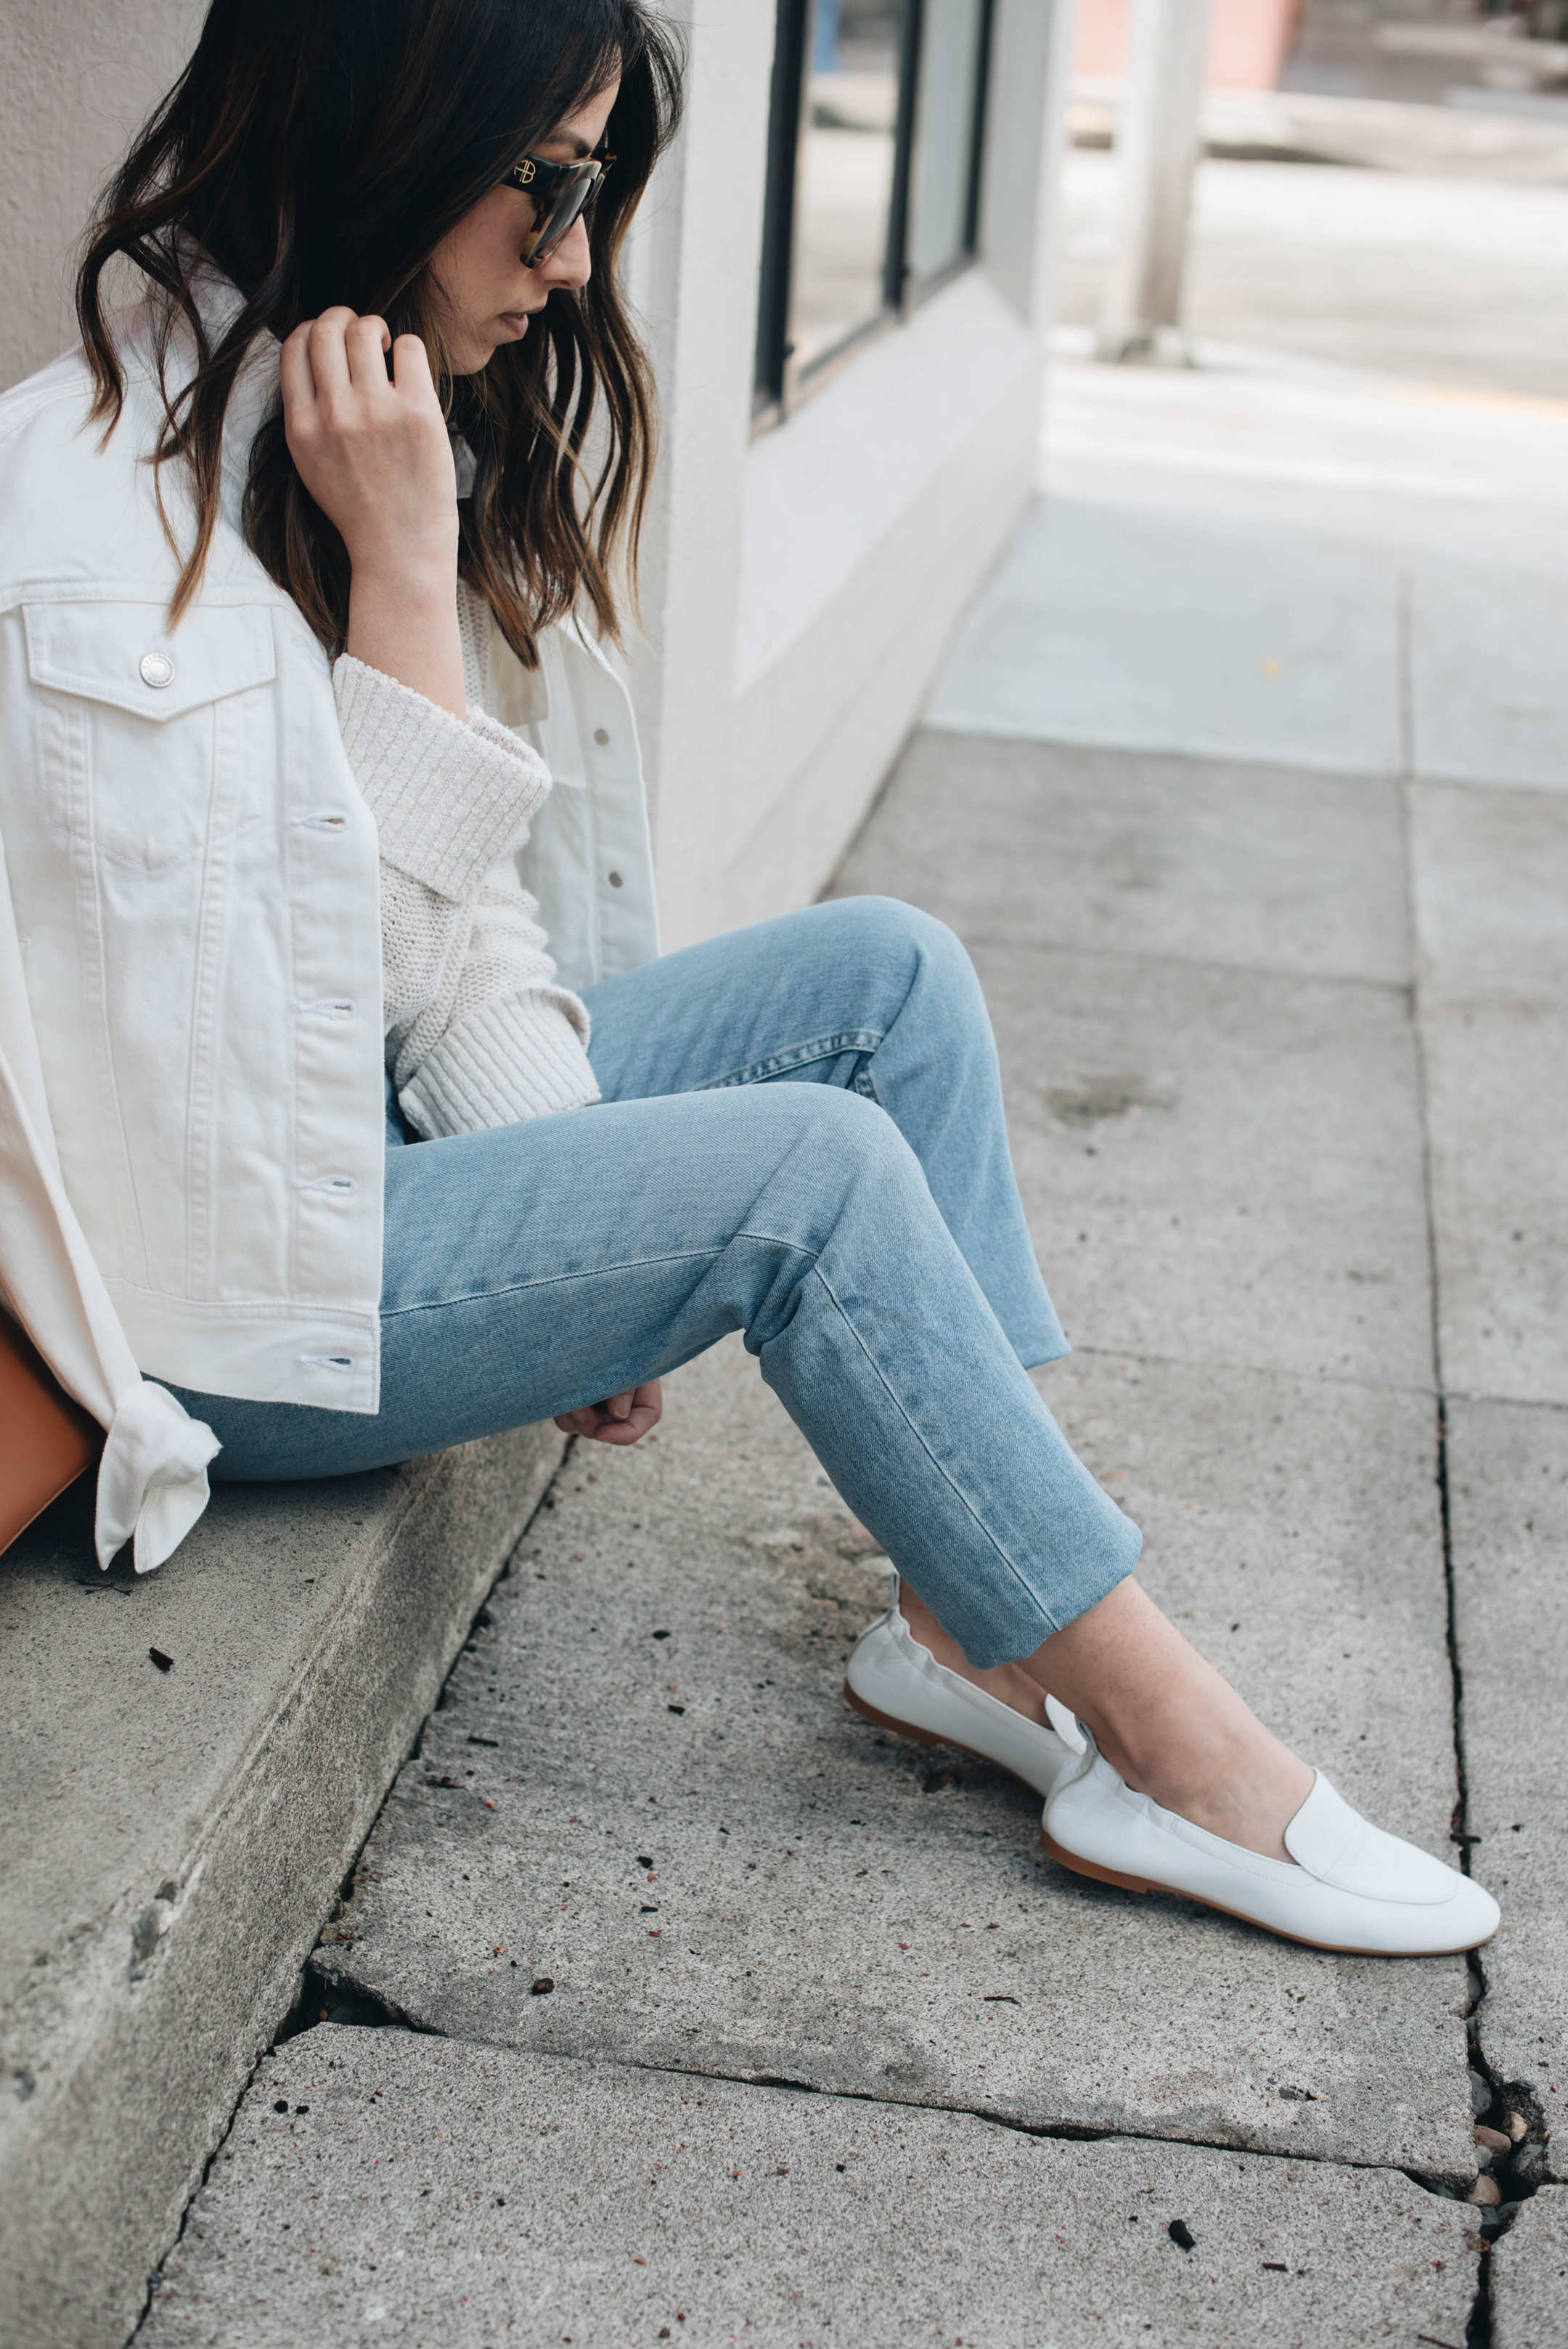 Everlane Day Loafers in white